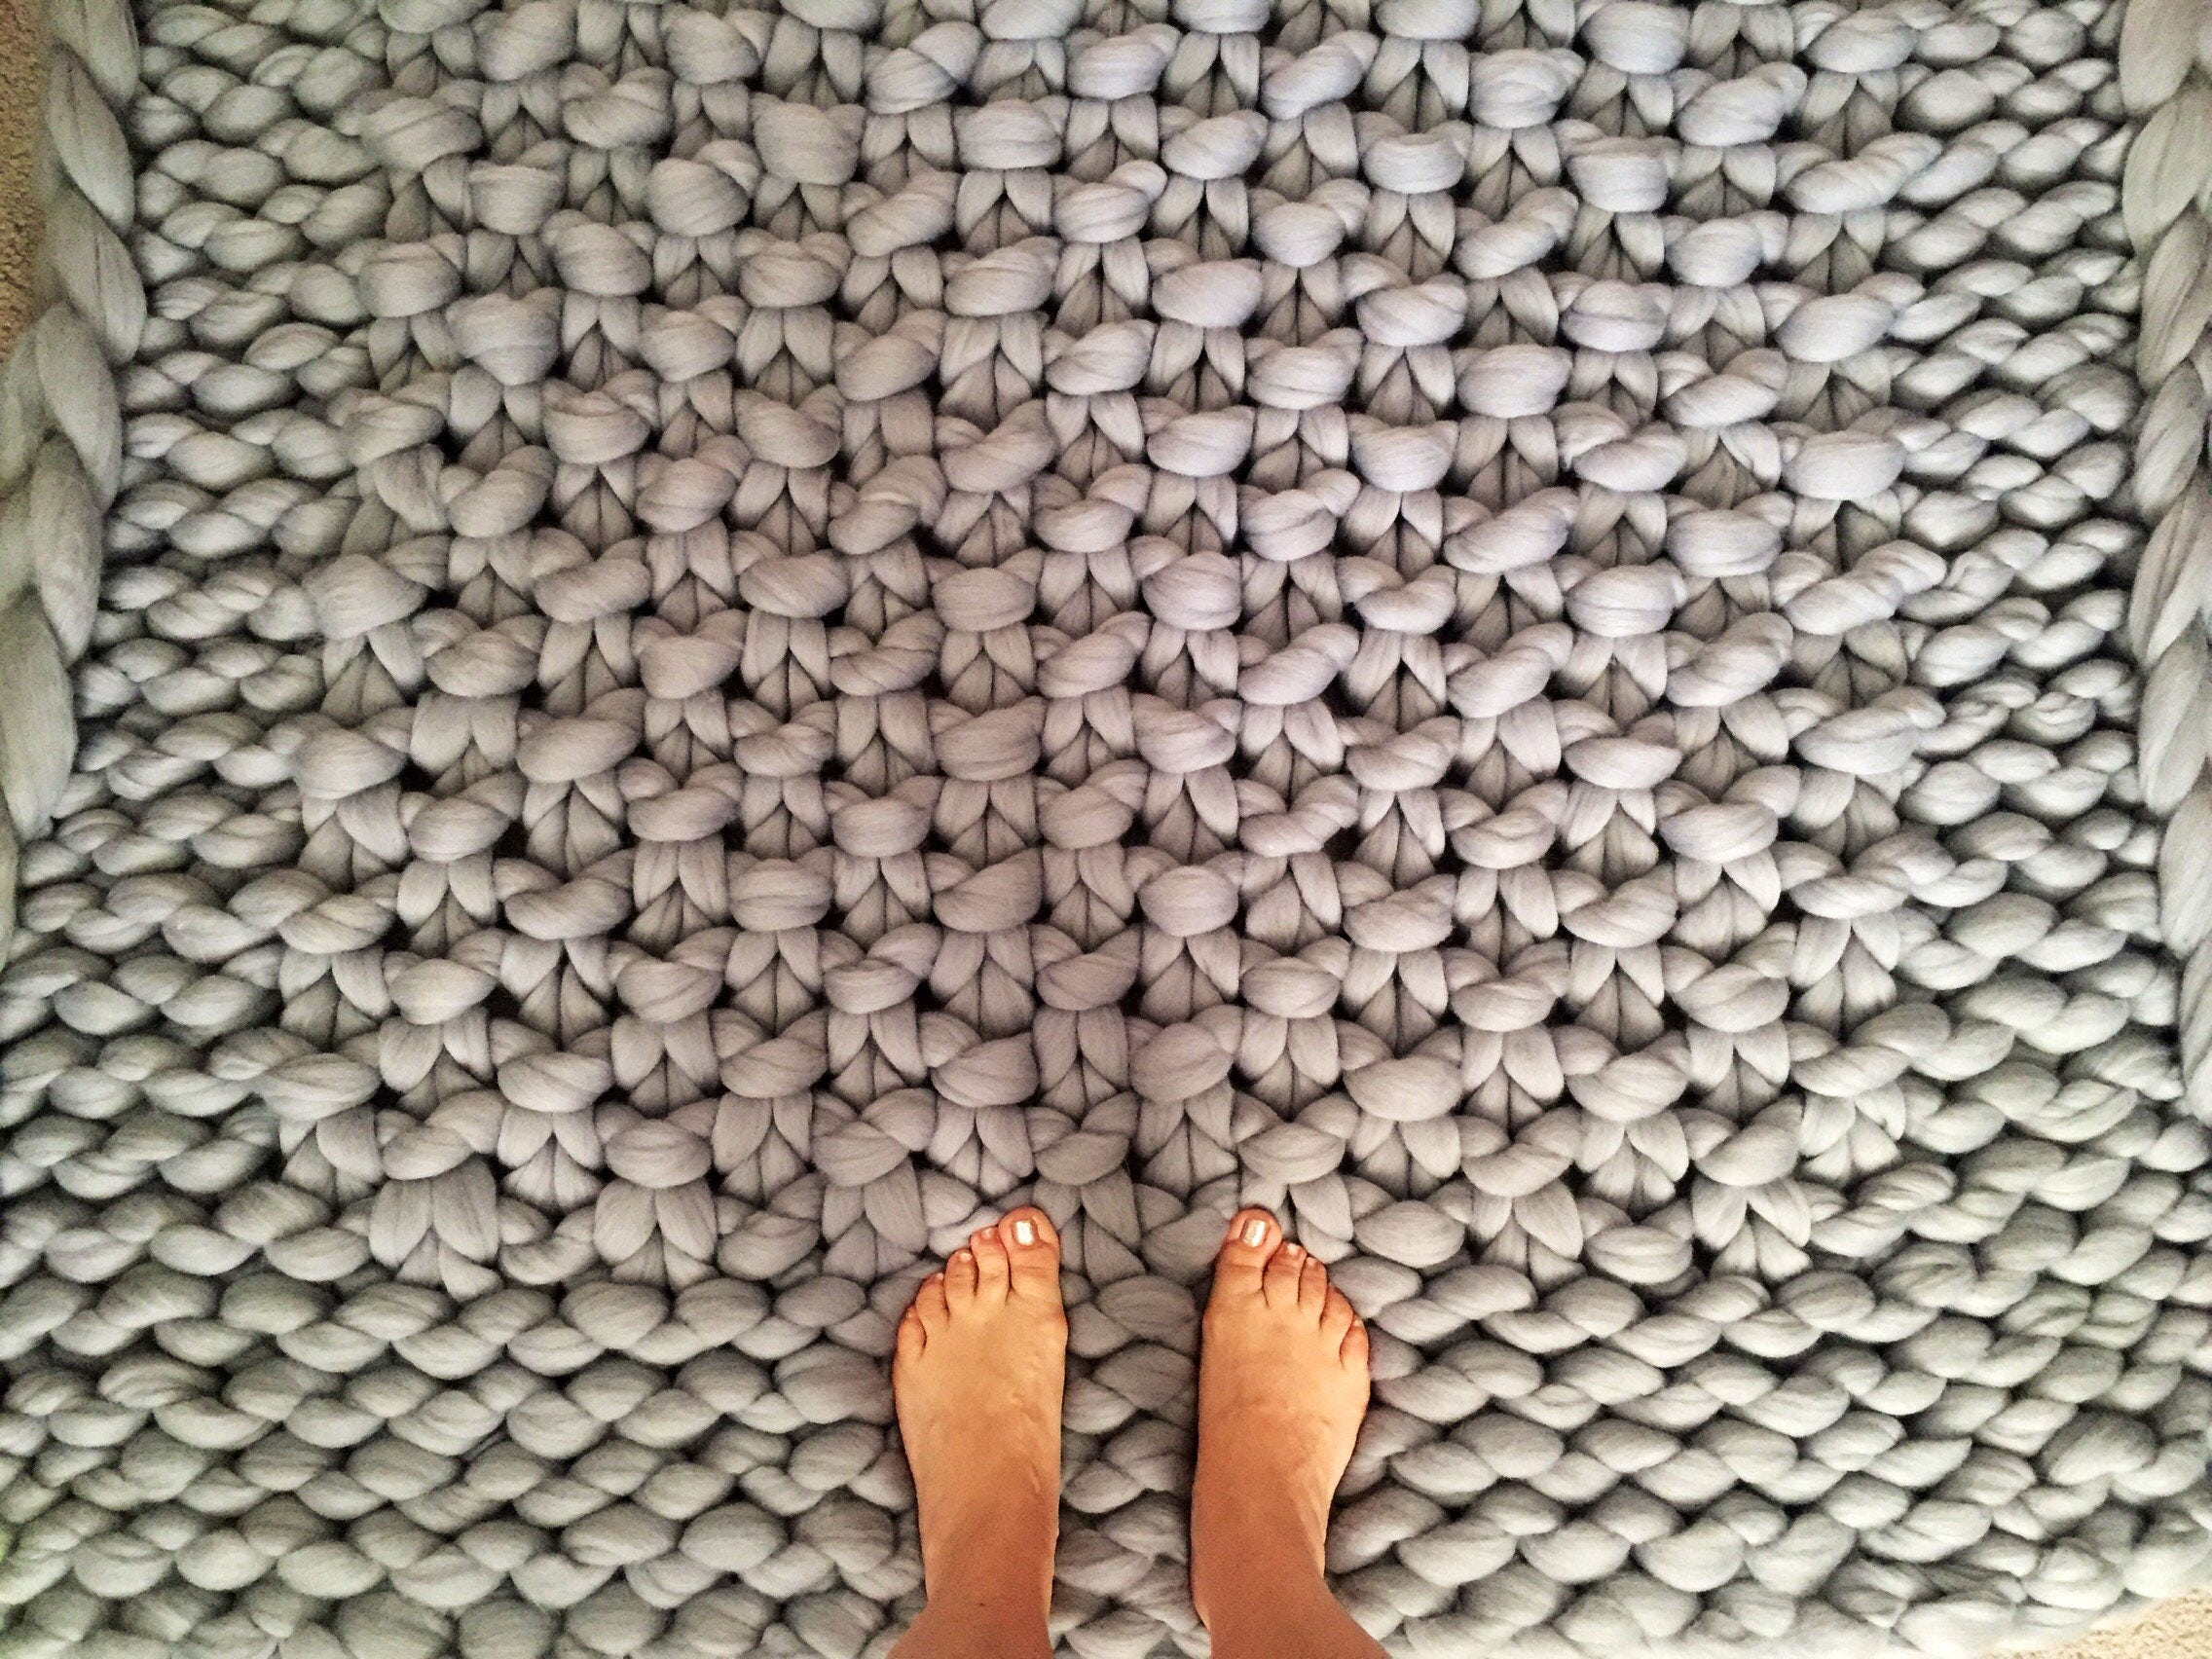 Rug, Chunky Knit Carpet, Merino Wool Rug, Giant Knit Carpet, Knitted Carpet